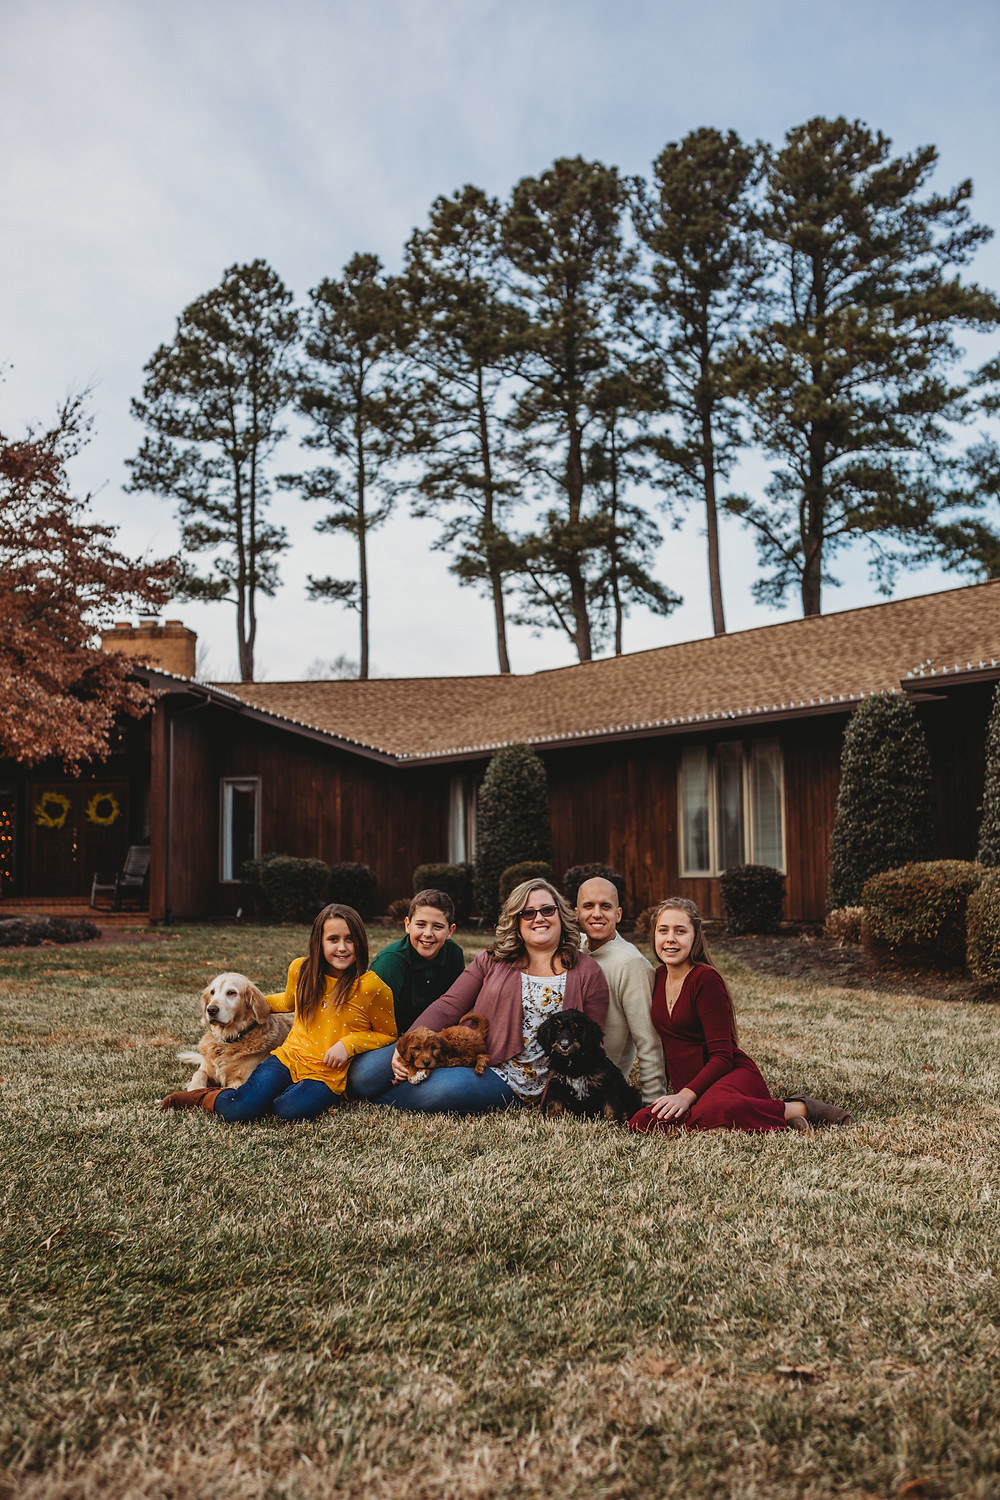 family sitting in grass in front of their home